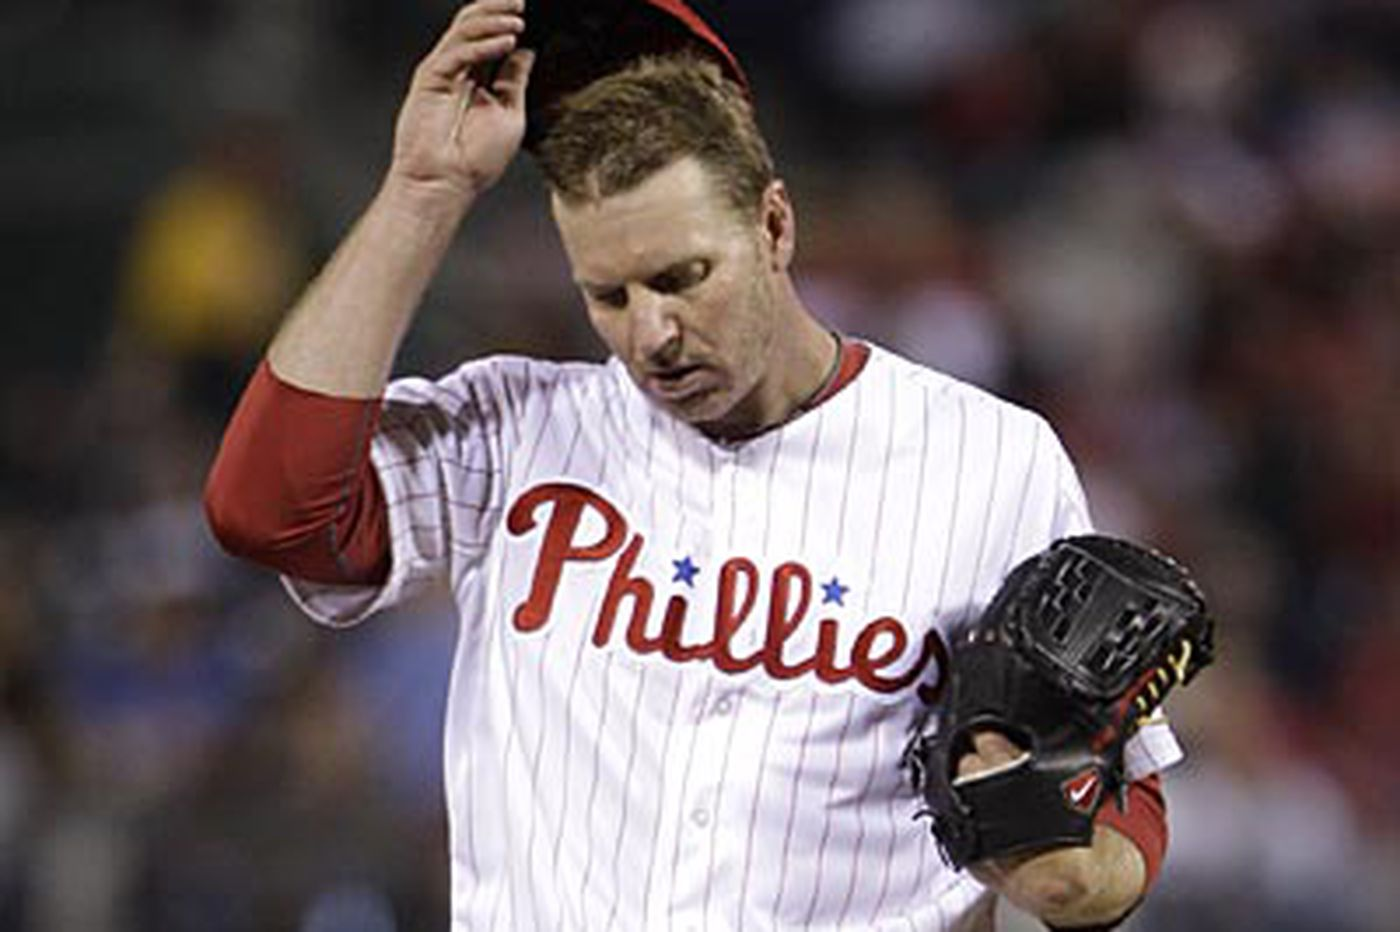 Rest is best for Halladay, doctor says